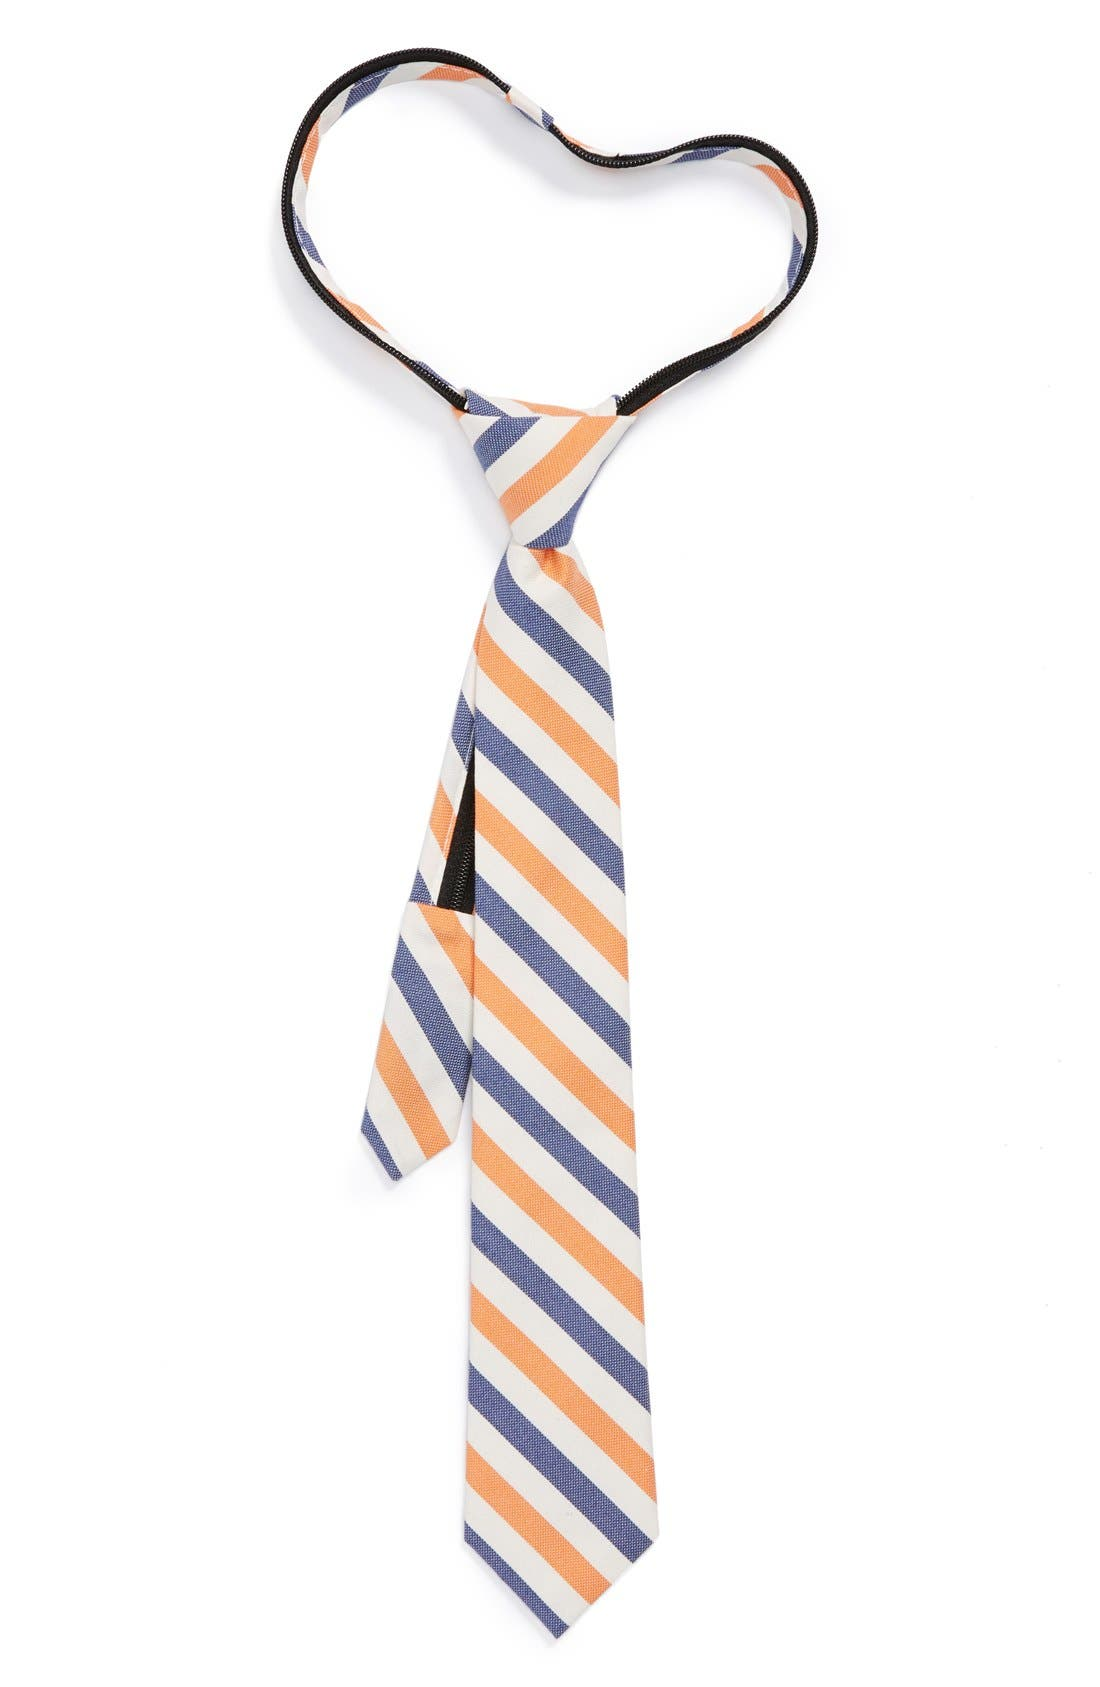 Alternate Image 1 Selected - Nordstrom Cotton & Silk Zipper Tie (Little Boys)